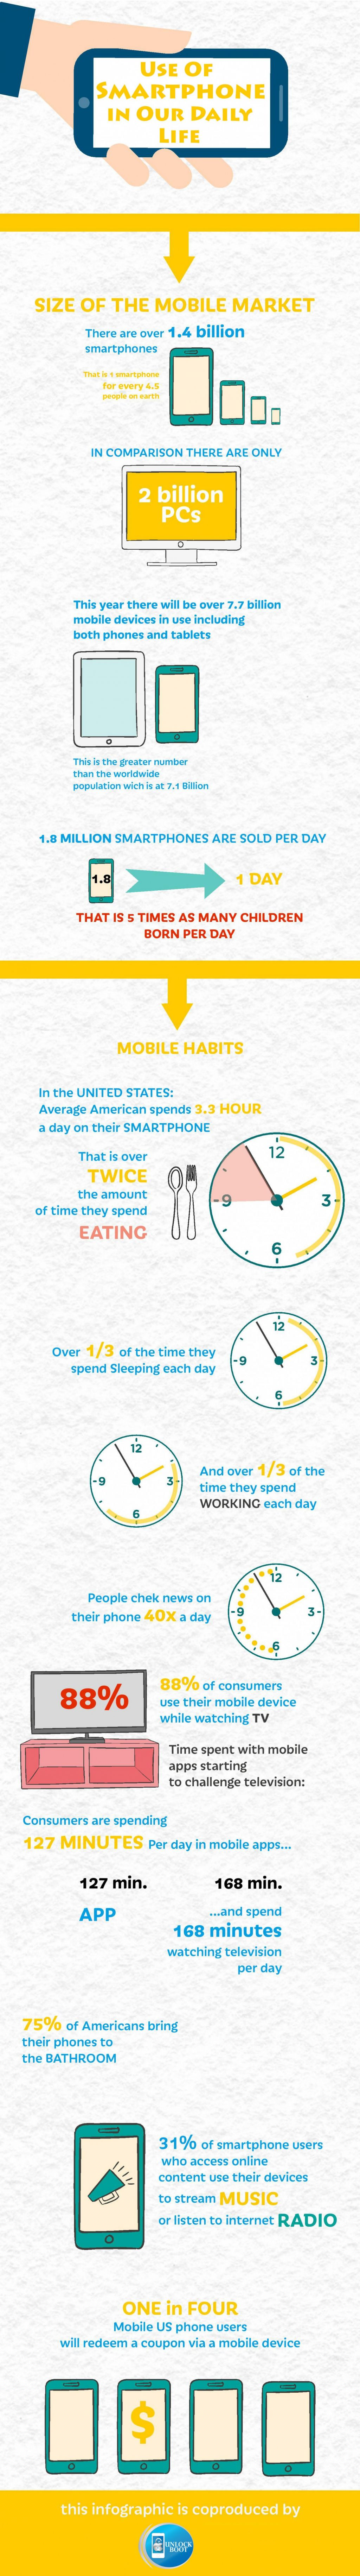 usage-of-smartphone-in-our-daily-life_56d79166cb7eb_w1500